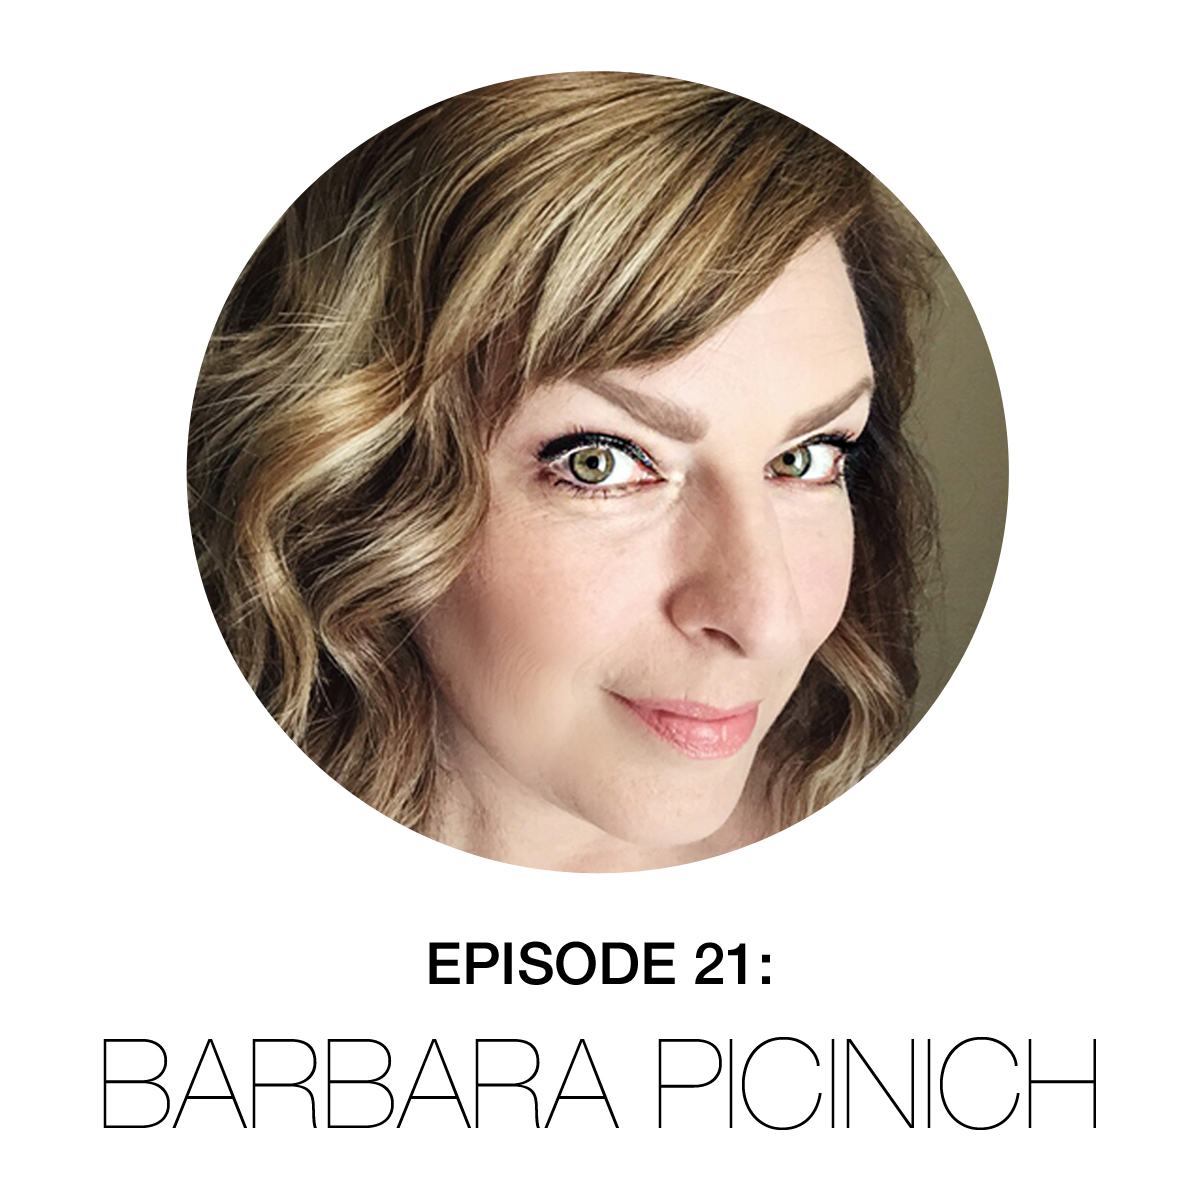 Episode 21 – Barbara Picinich